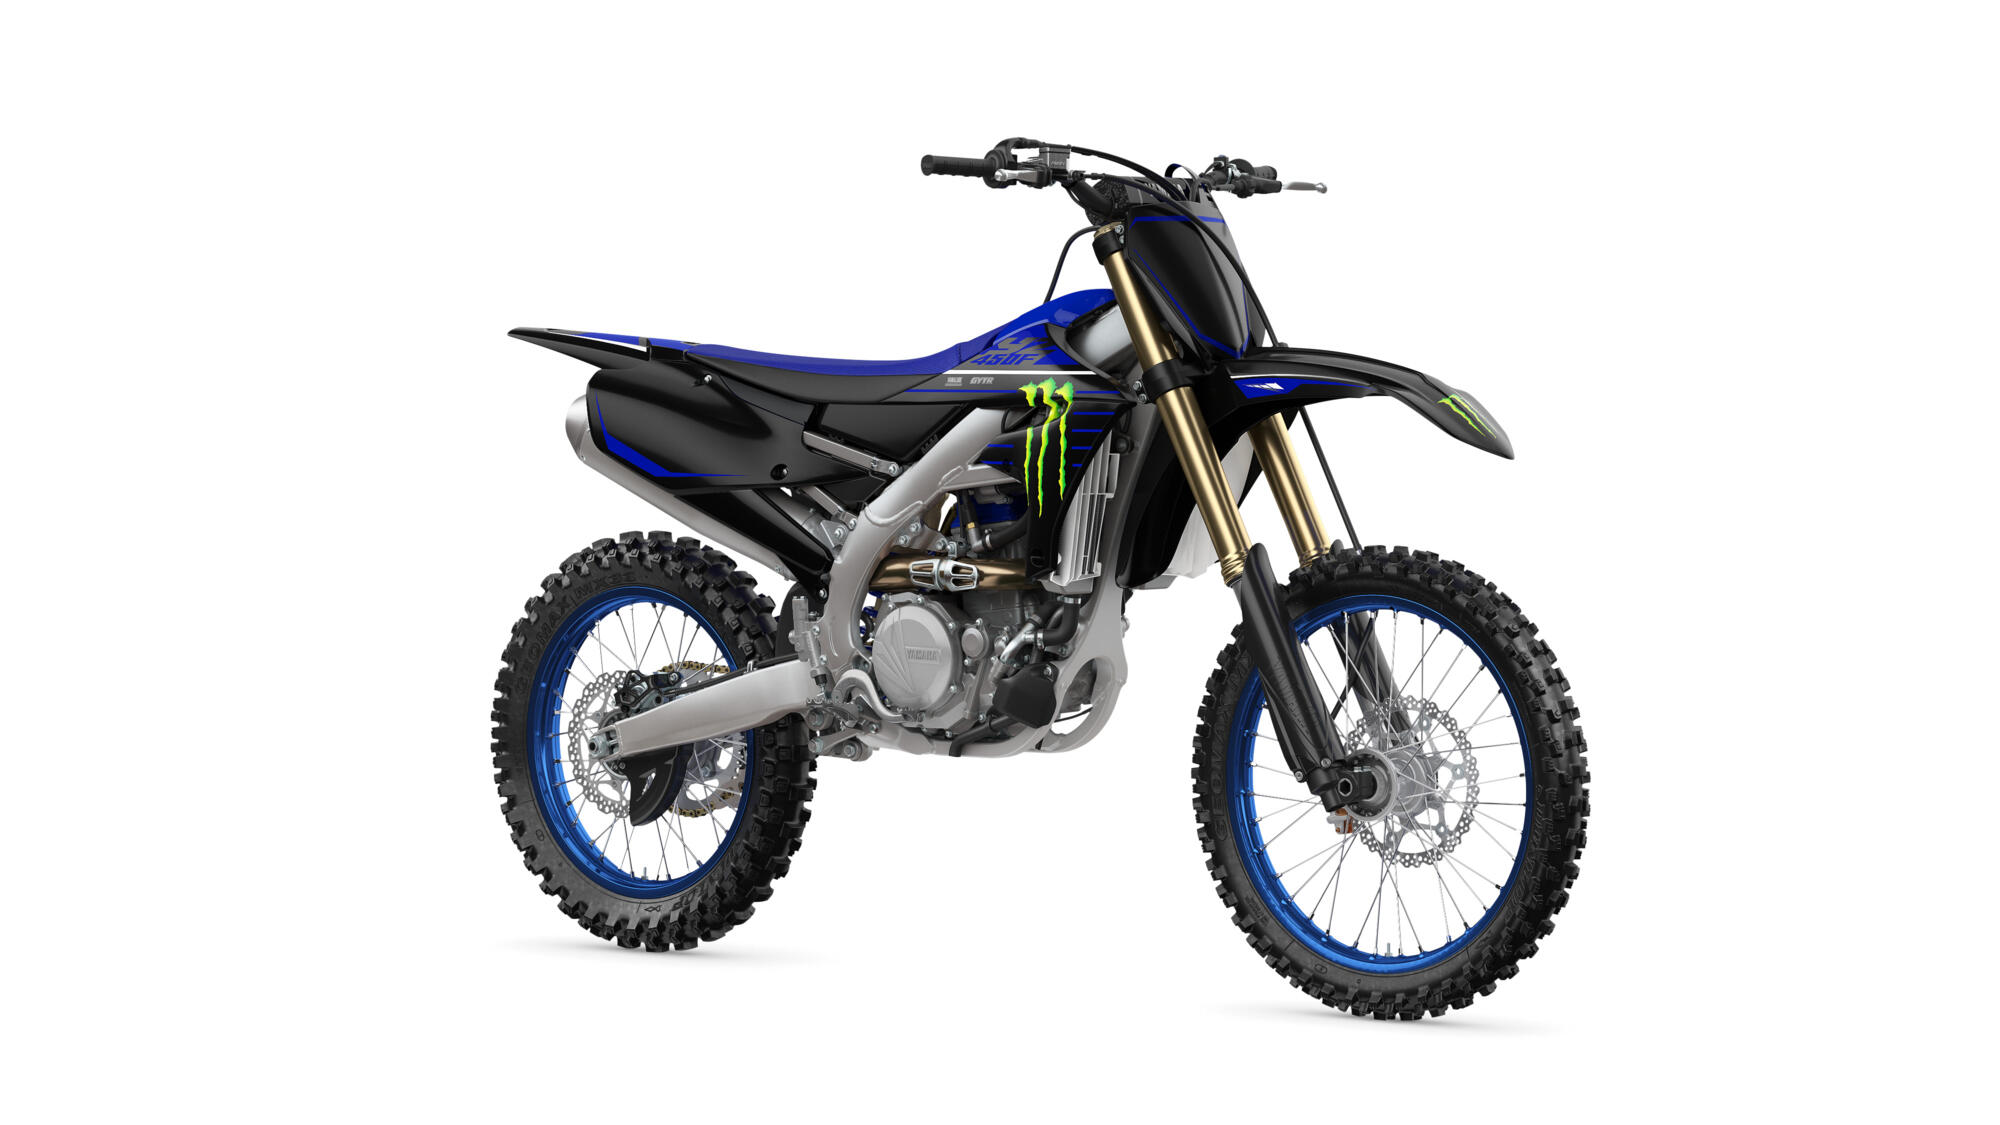 YZ450F Monster Energy Yamaha Racing Edition